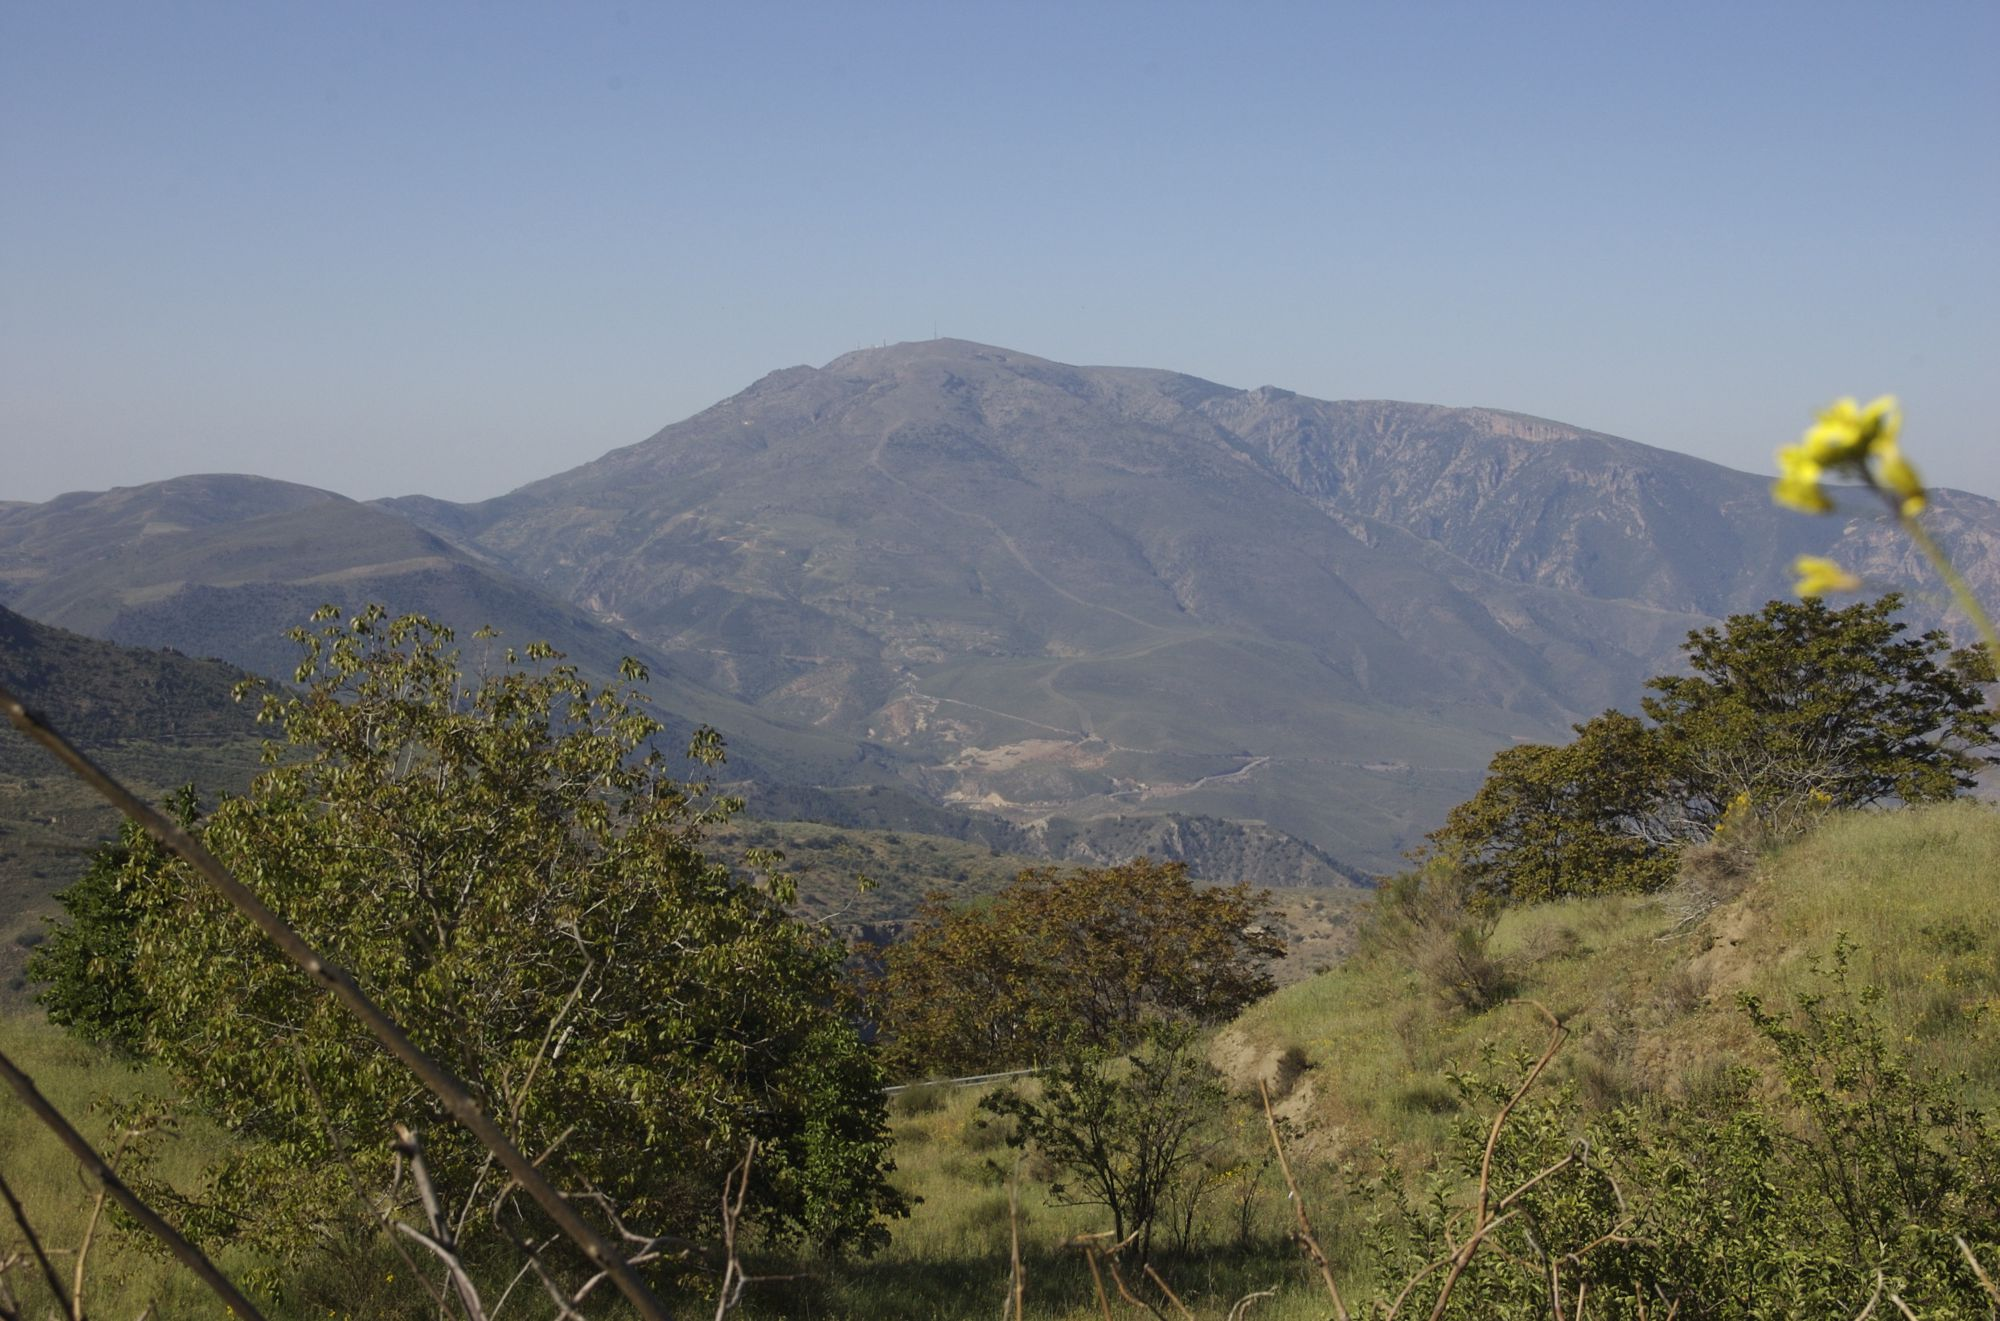 The views and the tranquillity from this peaceful Granada site are well worth the epic journey to get there.